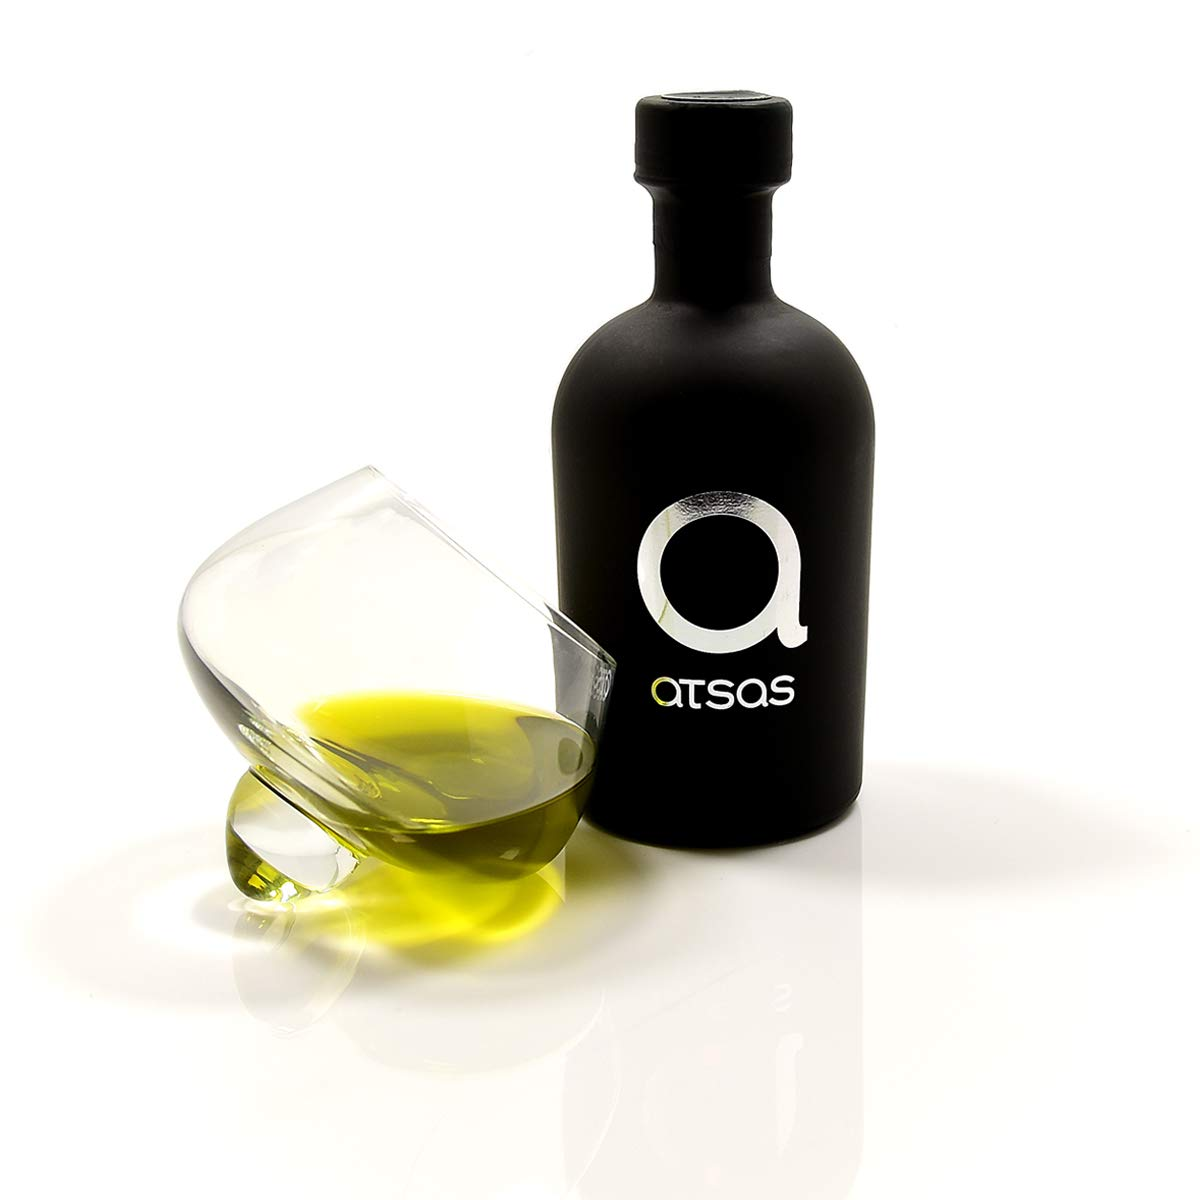 Organic Extra Virgin Olive Oil High in Polyphenols | Rich in Health-Boosting Phenols and Oleocanthal Compound | Organic Olive Oil Extra Virgin Cold Pressed from Cyprus | Harvest 2020 | (Atsas 250ml)